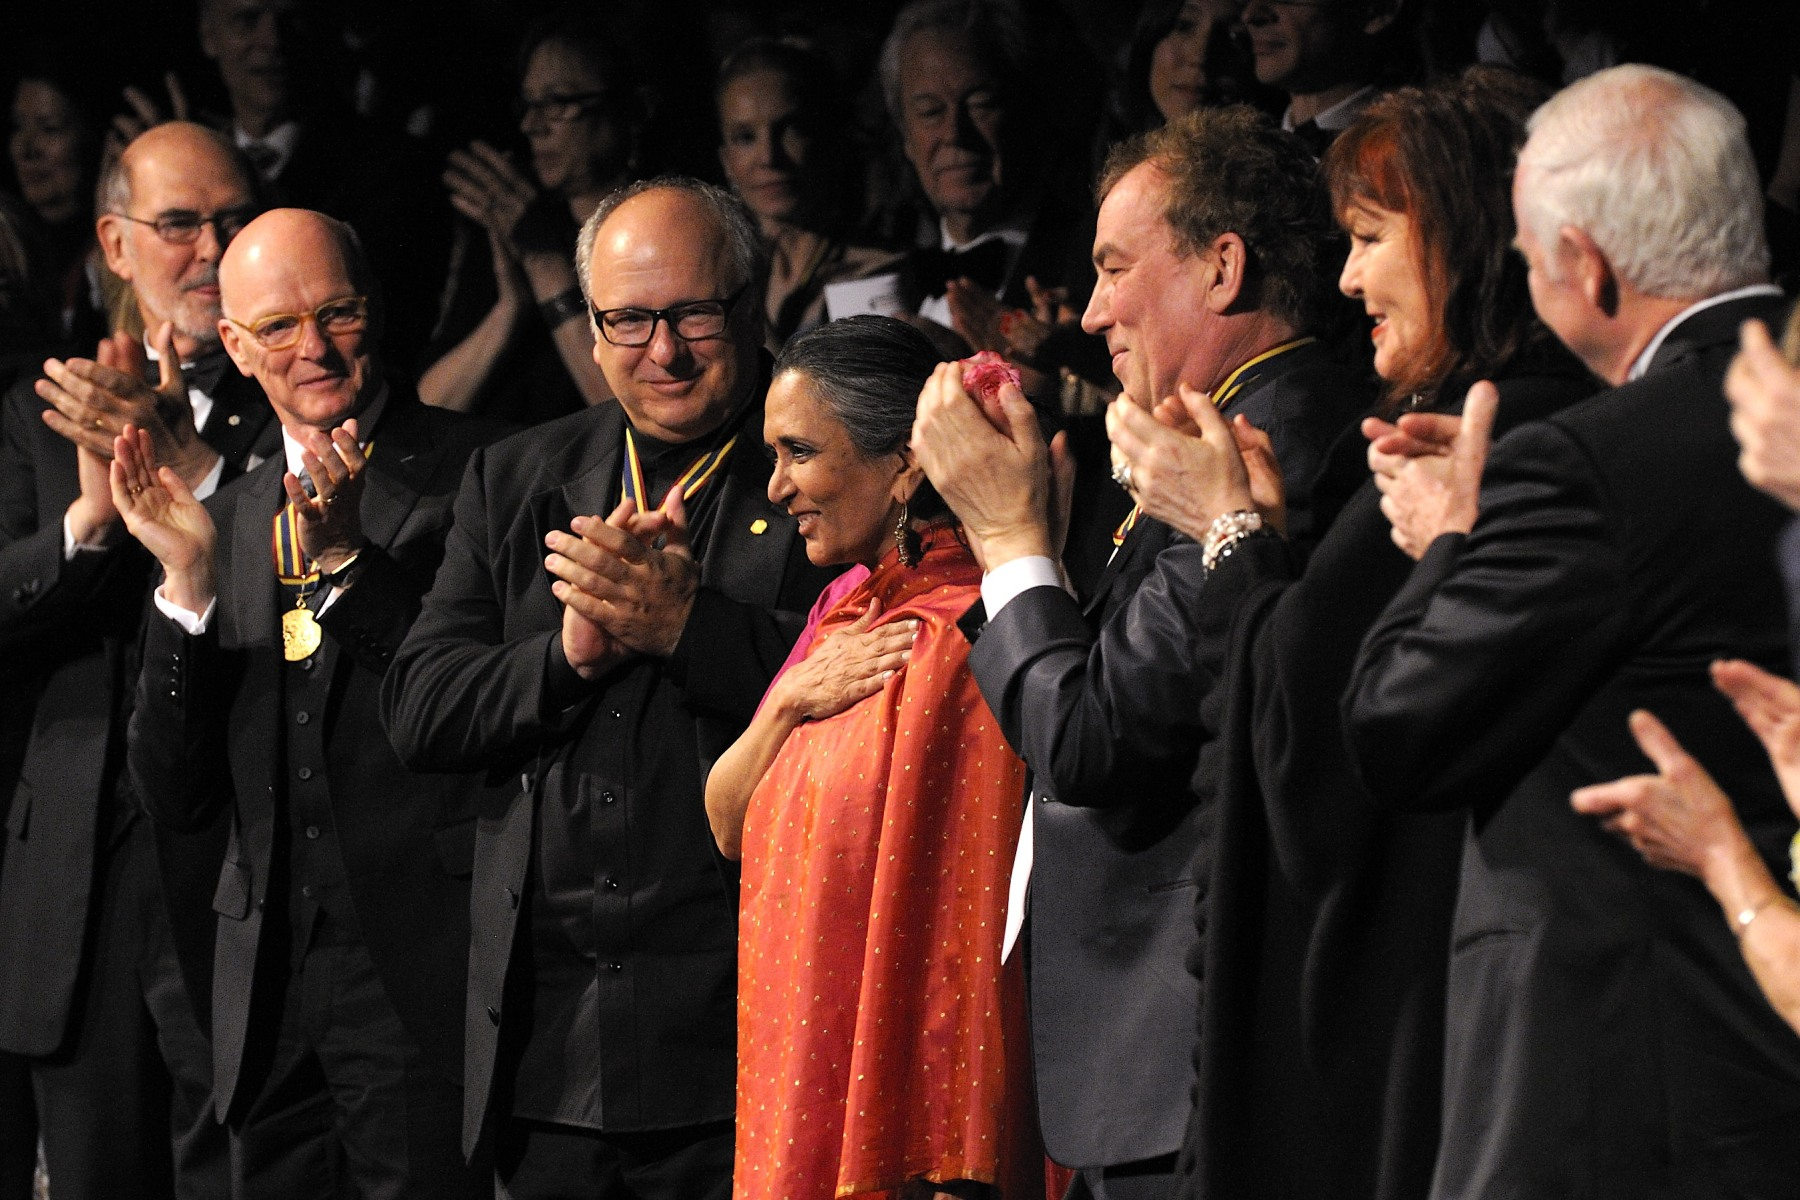 The gala featured outstanding performances, evocative film portraits and personal tributes made by special guests.Deepa Mehta, film director and screenwriter, one of the honoured laureates.